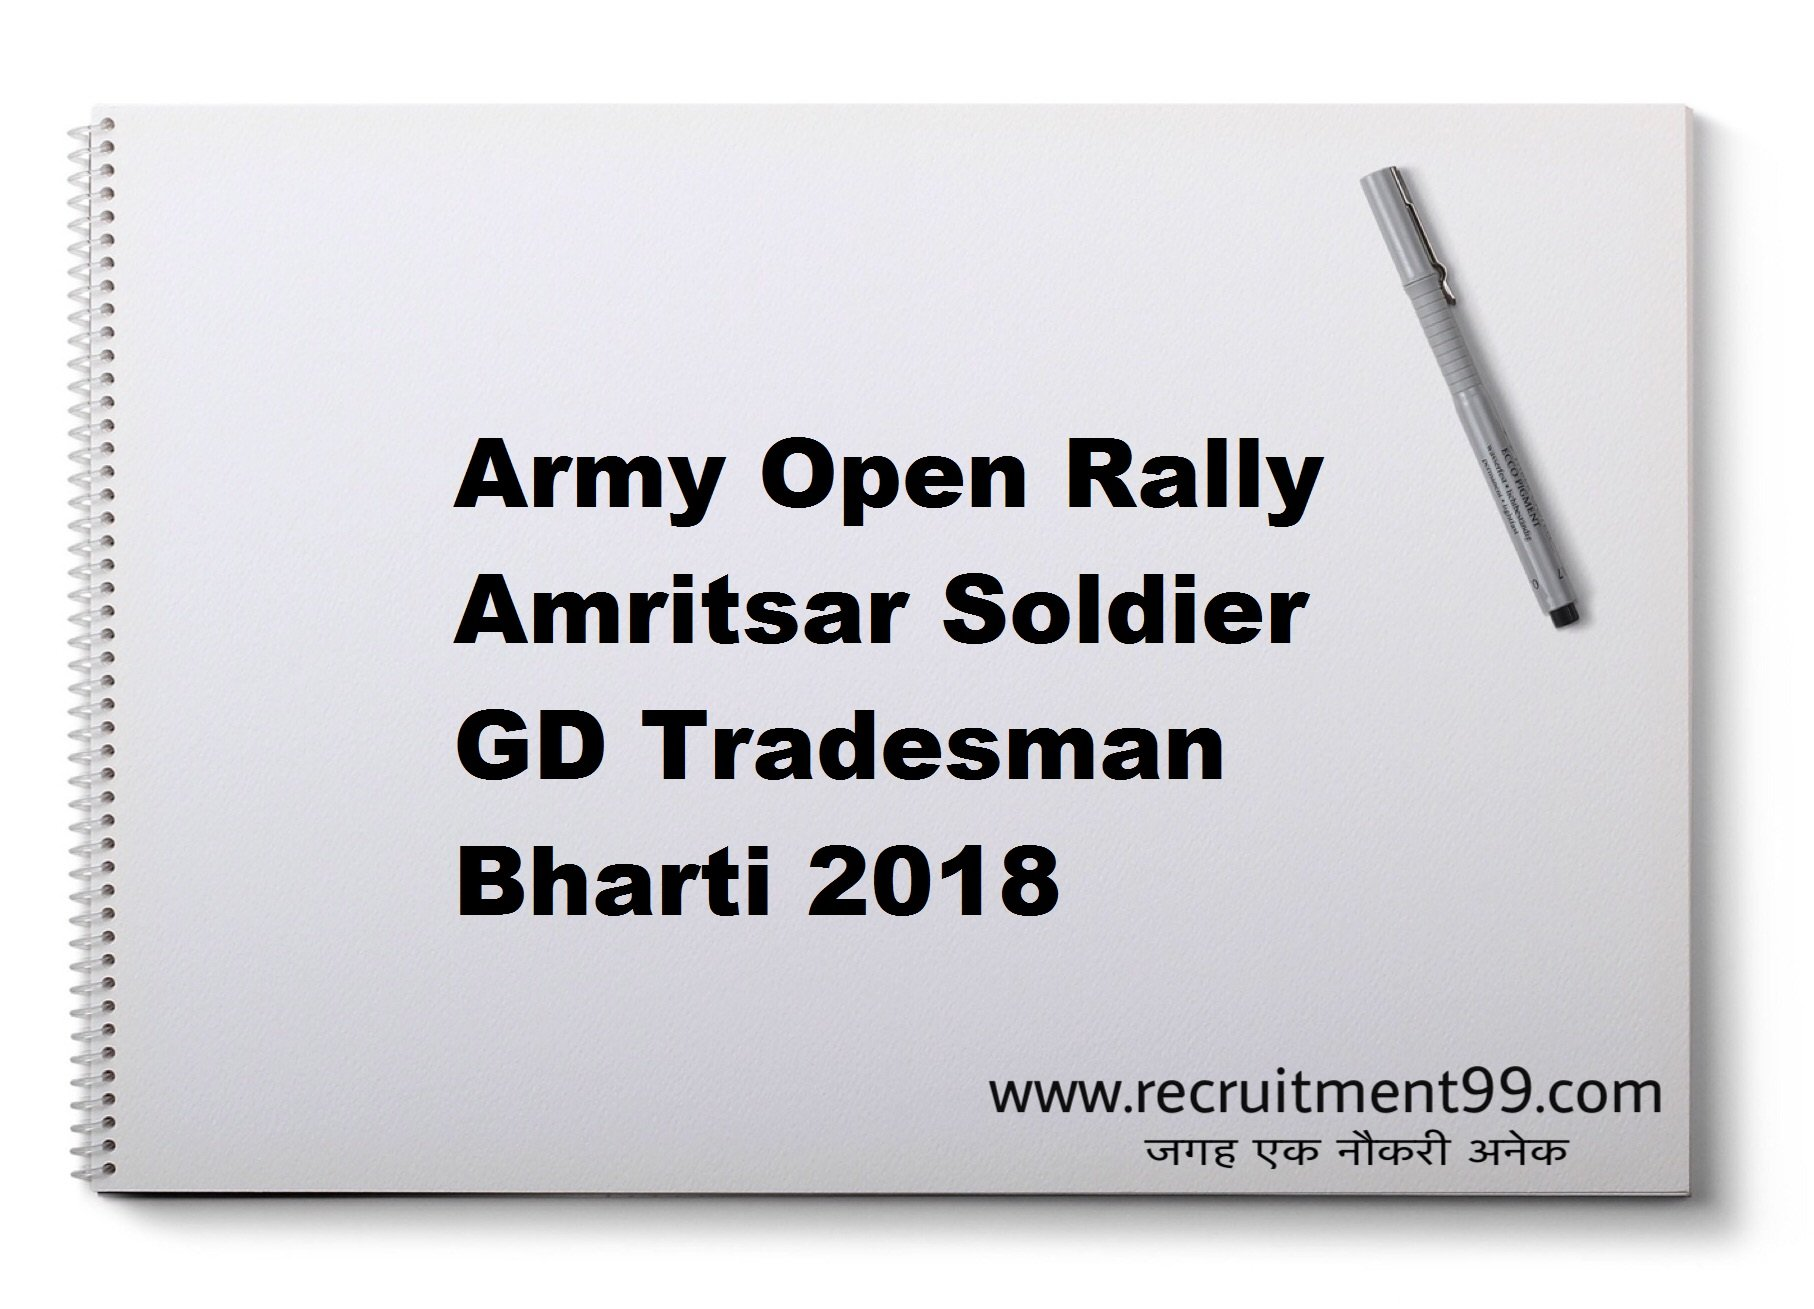 Army Open Rally Amritsar Soldier GD Tradesman Bharti Admit Card Result 2018